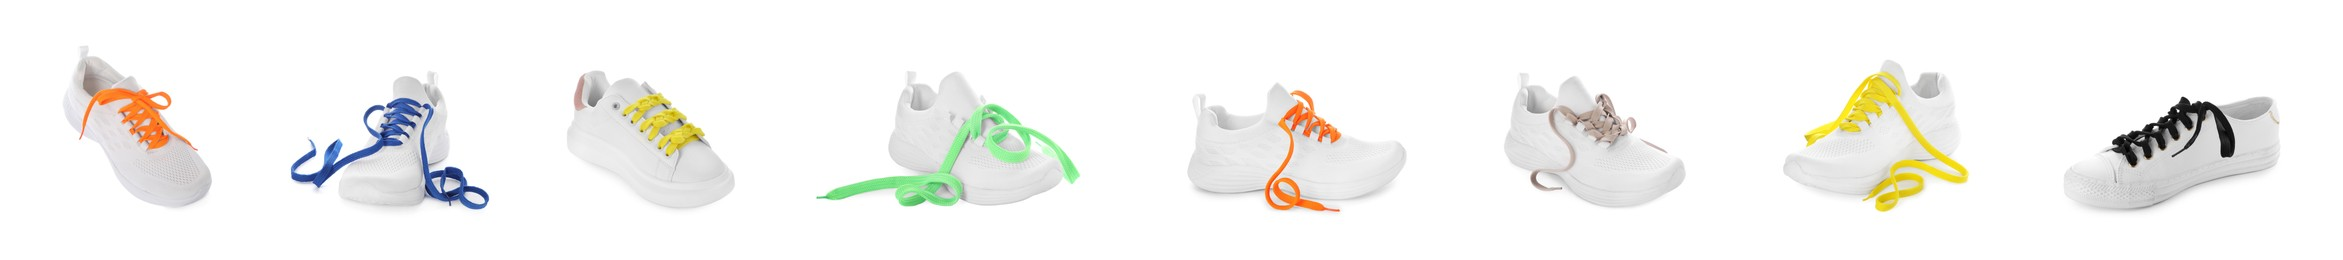 Set of different stylish shoes with laces on white background. Banner design